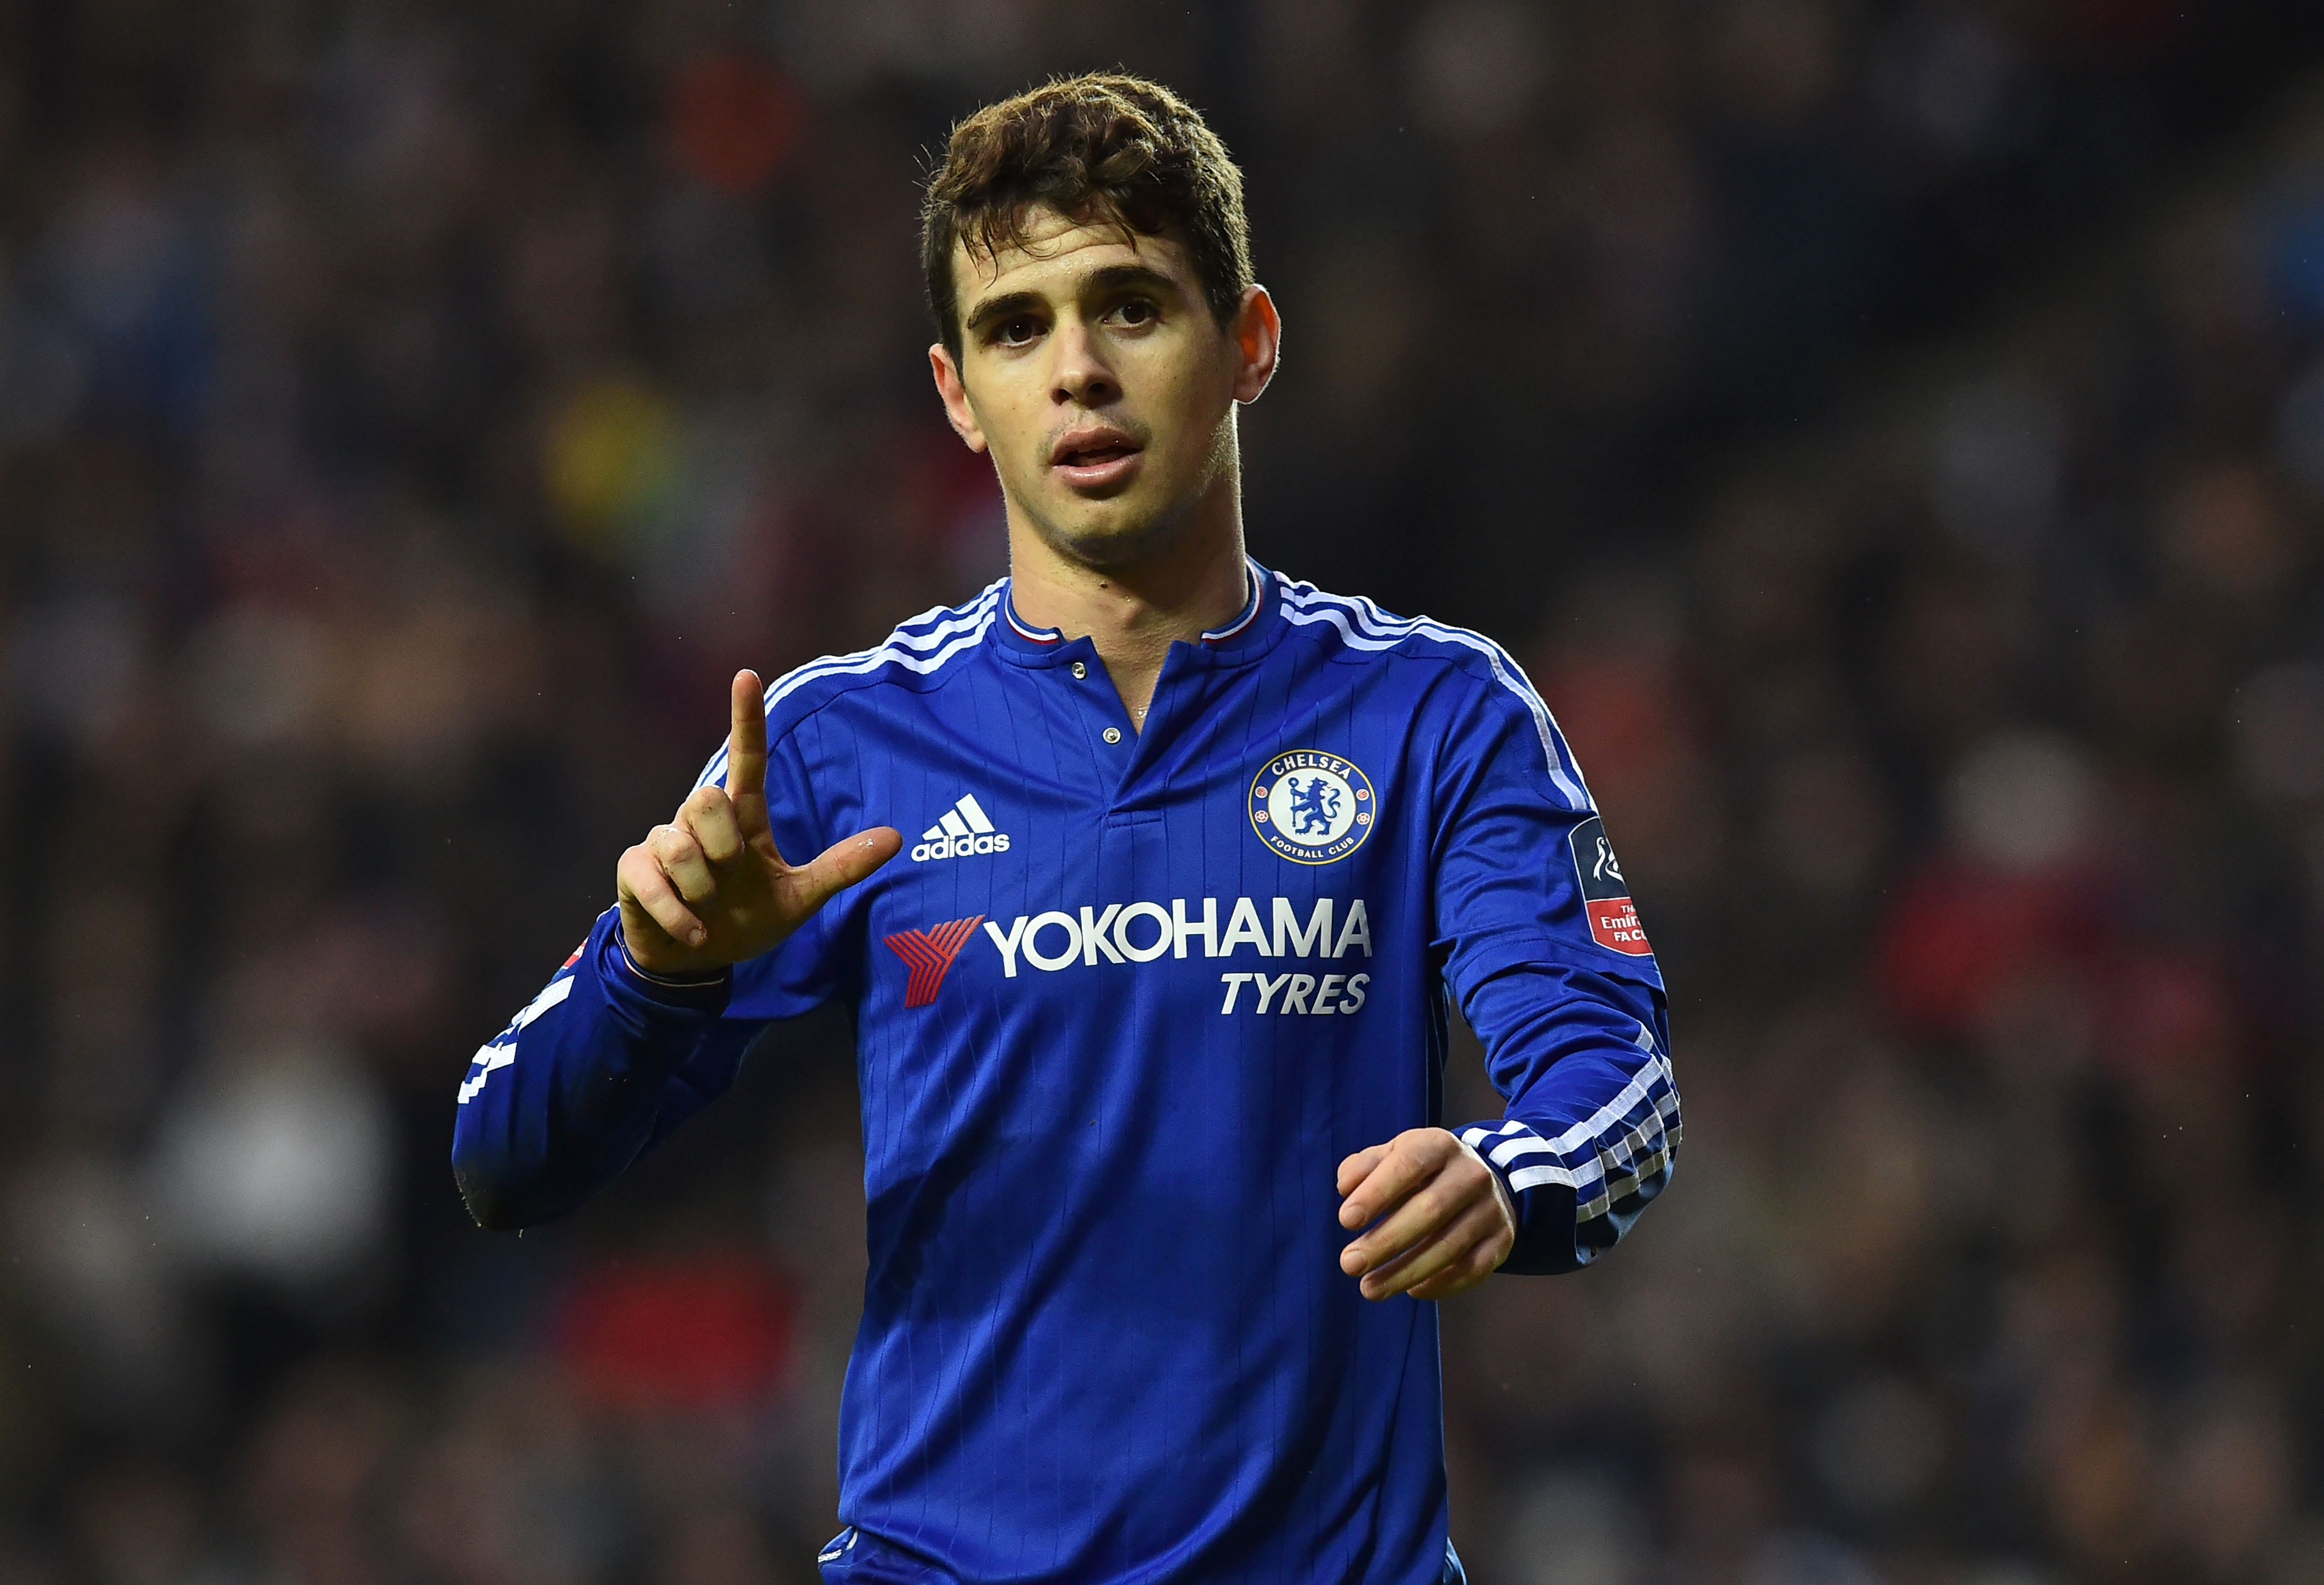 John Obi Mikel pays tribute to Oscar after his £60m Chelsea exit